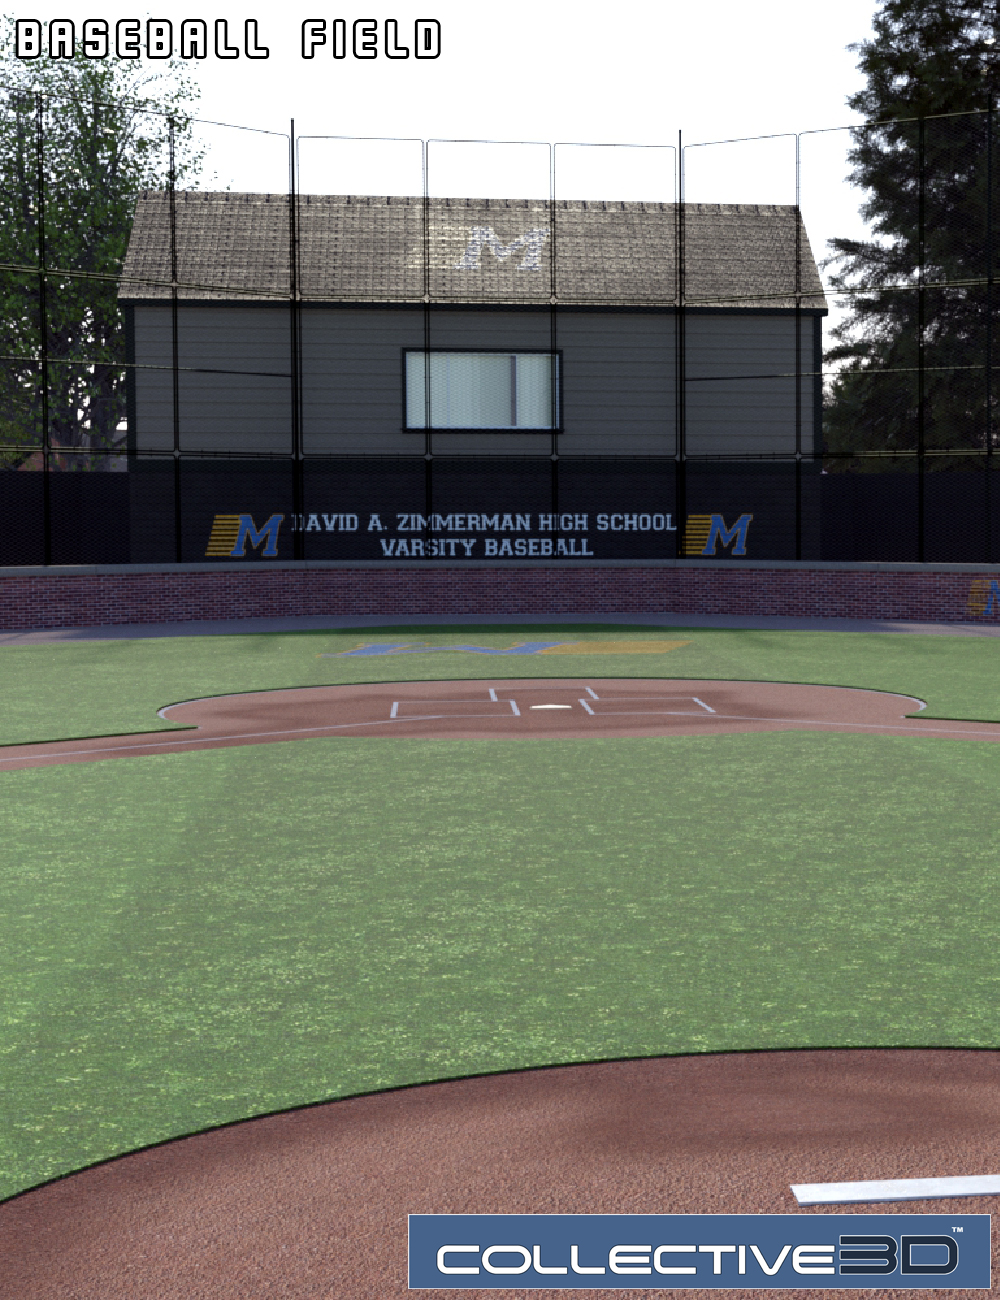 Collective3d Baseball Field by: Collective3d, 3D Models by Daz 3D